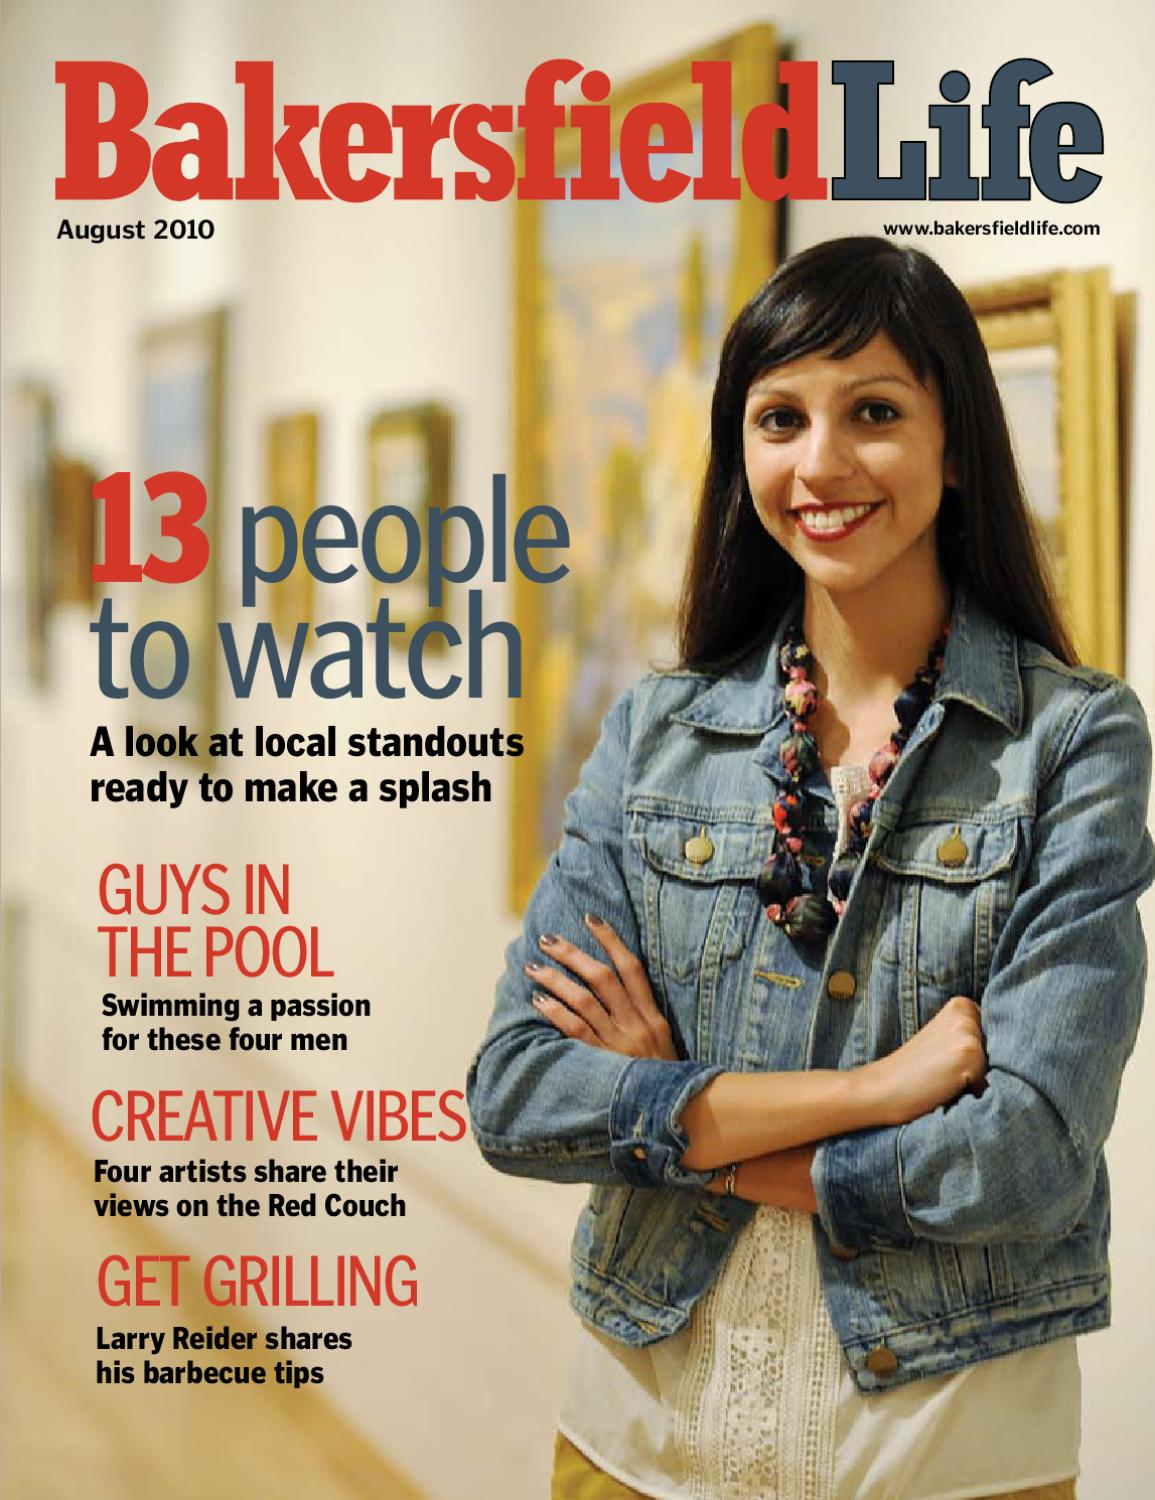 Bakersfield Life Magazine August 2010 By Tbc Media